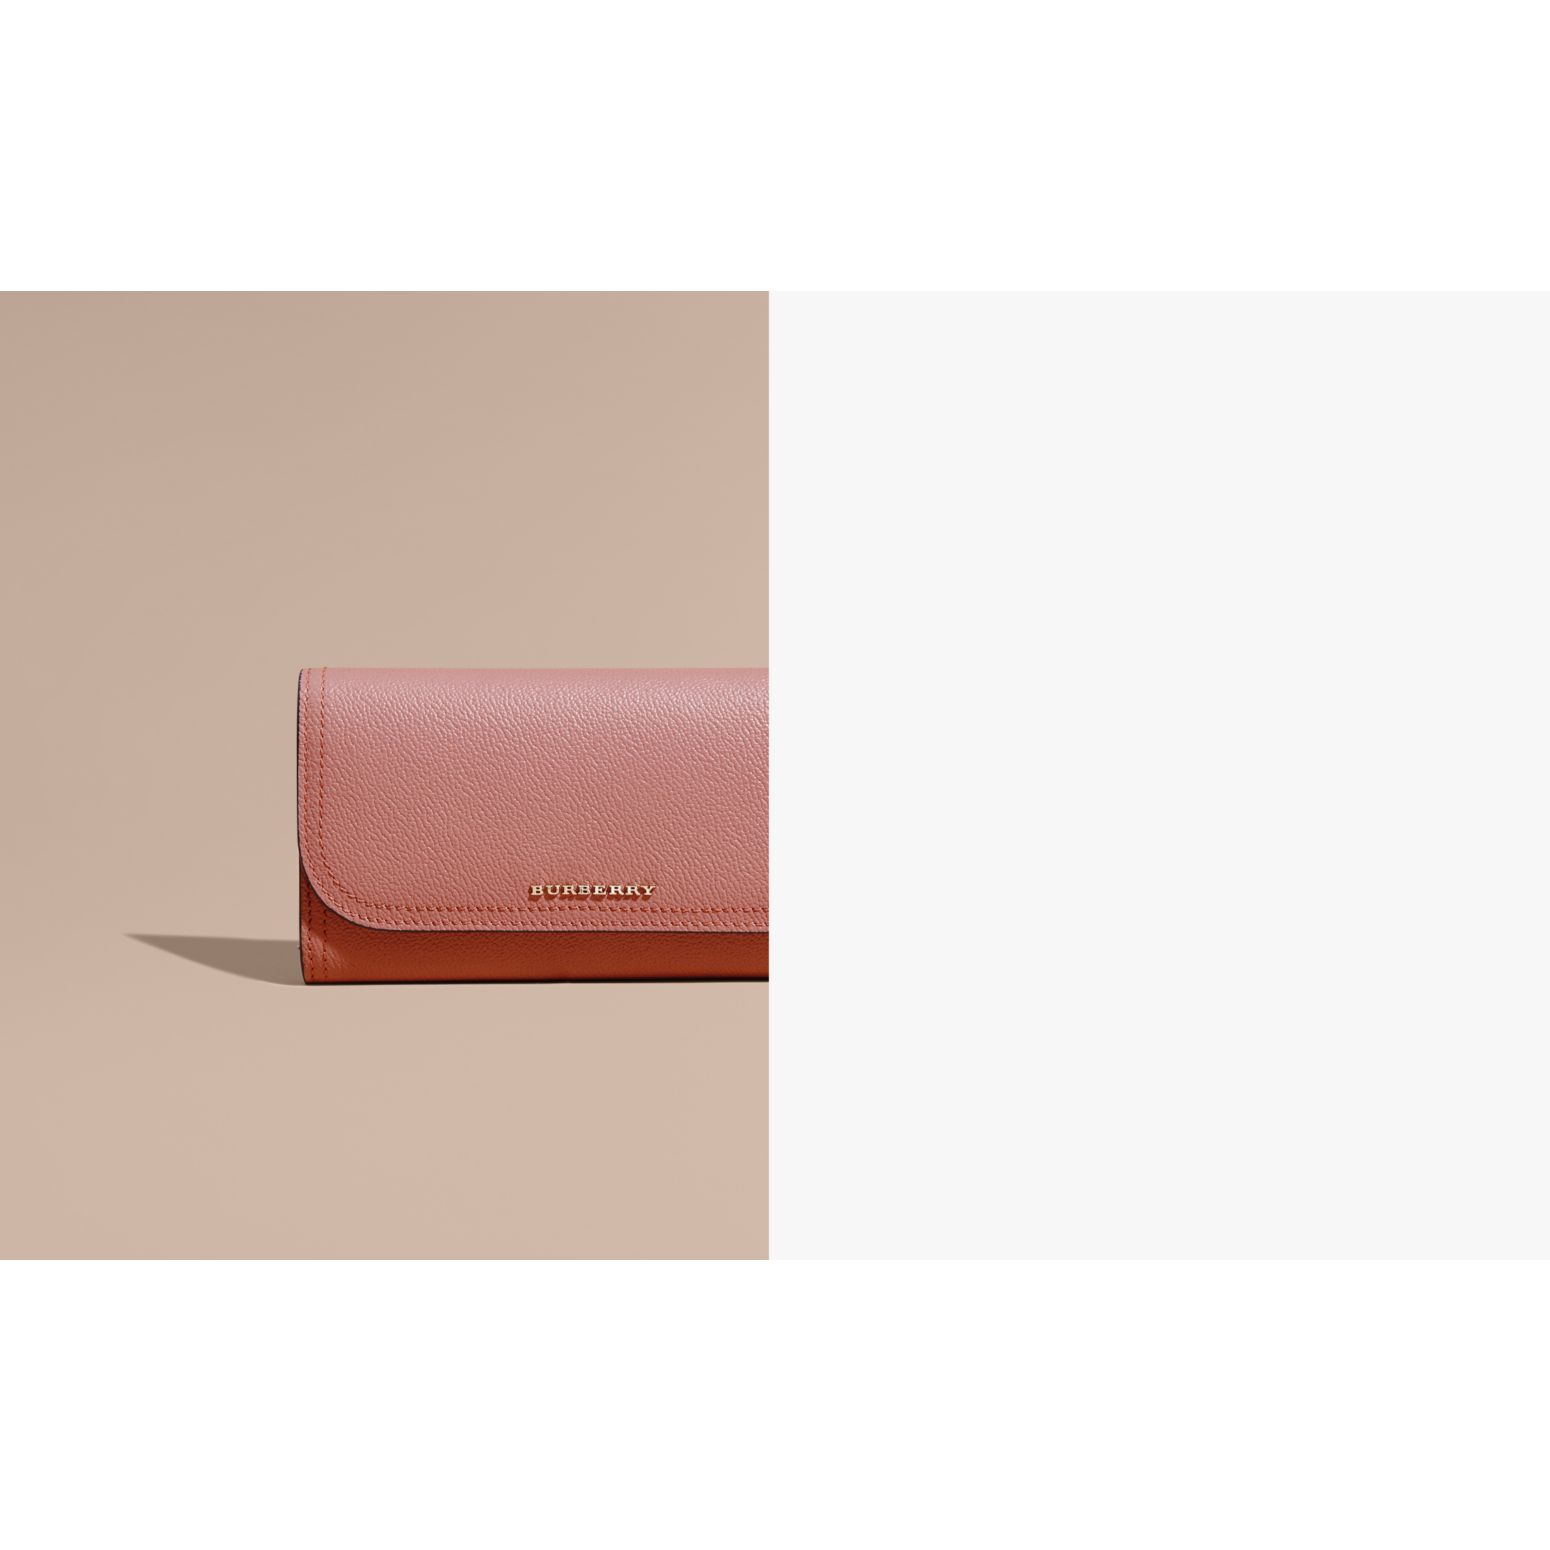 Grainy Leather Slim Continental Wallet in Dusty Pink - Women | Burberry - gallery image 2